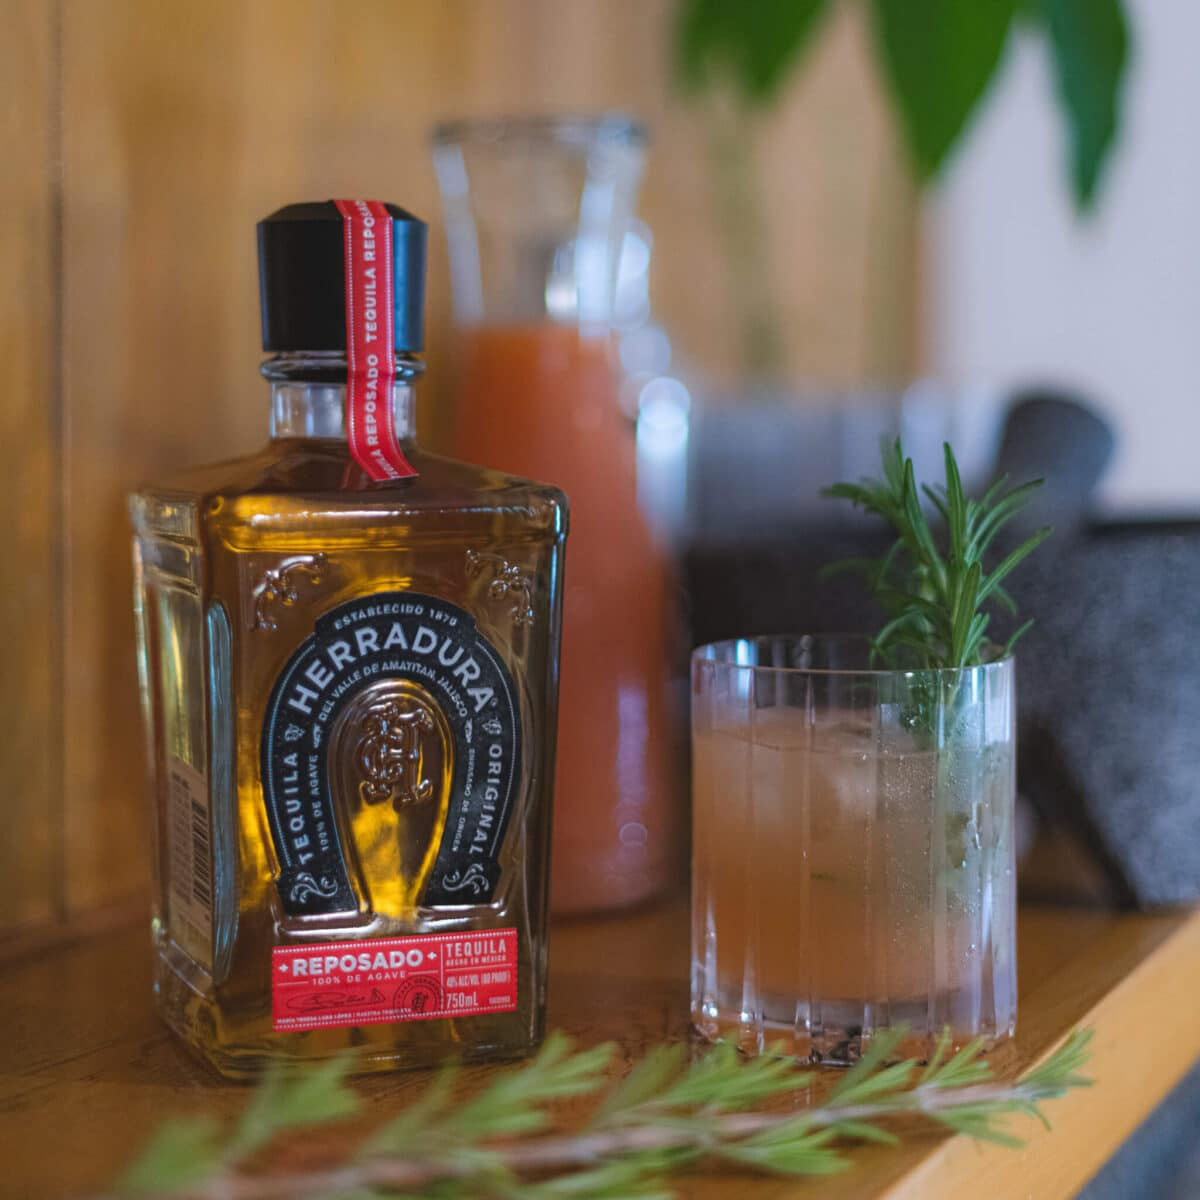 Rosemary Paloma Cocktail Recipe 1 The Rosemary Paloma cocktail brings a savory, earthy twist to the traditional Paloma. Fragrant rosemary alongside the bright citrus flavors of fresh grapefruit juice create a balanced cocktail that is both refreshing and flavorful. The use of Herradura's reposada tequila keeps this drink tied to its roots and pays homage to the land of agave.